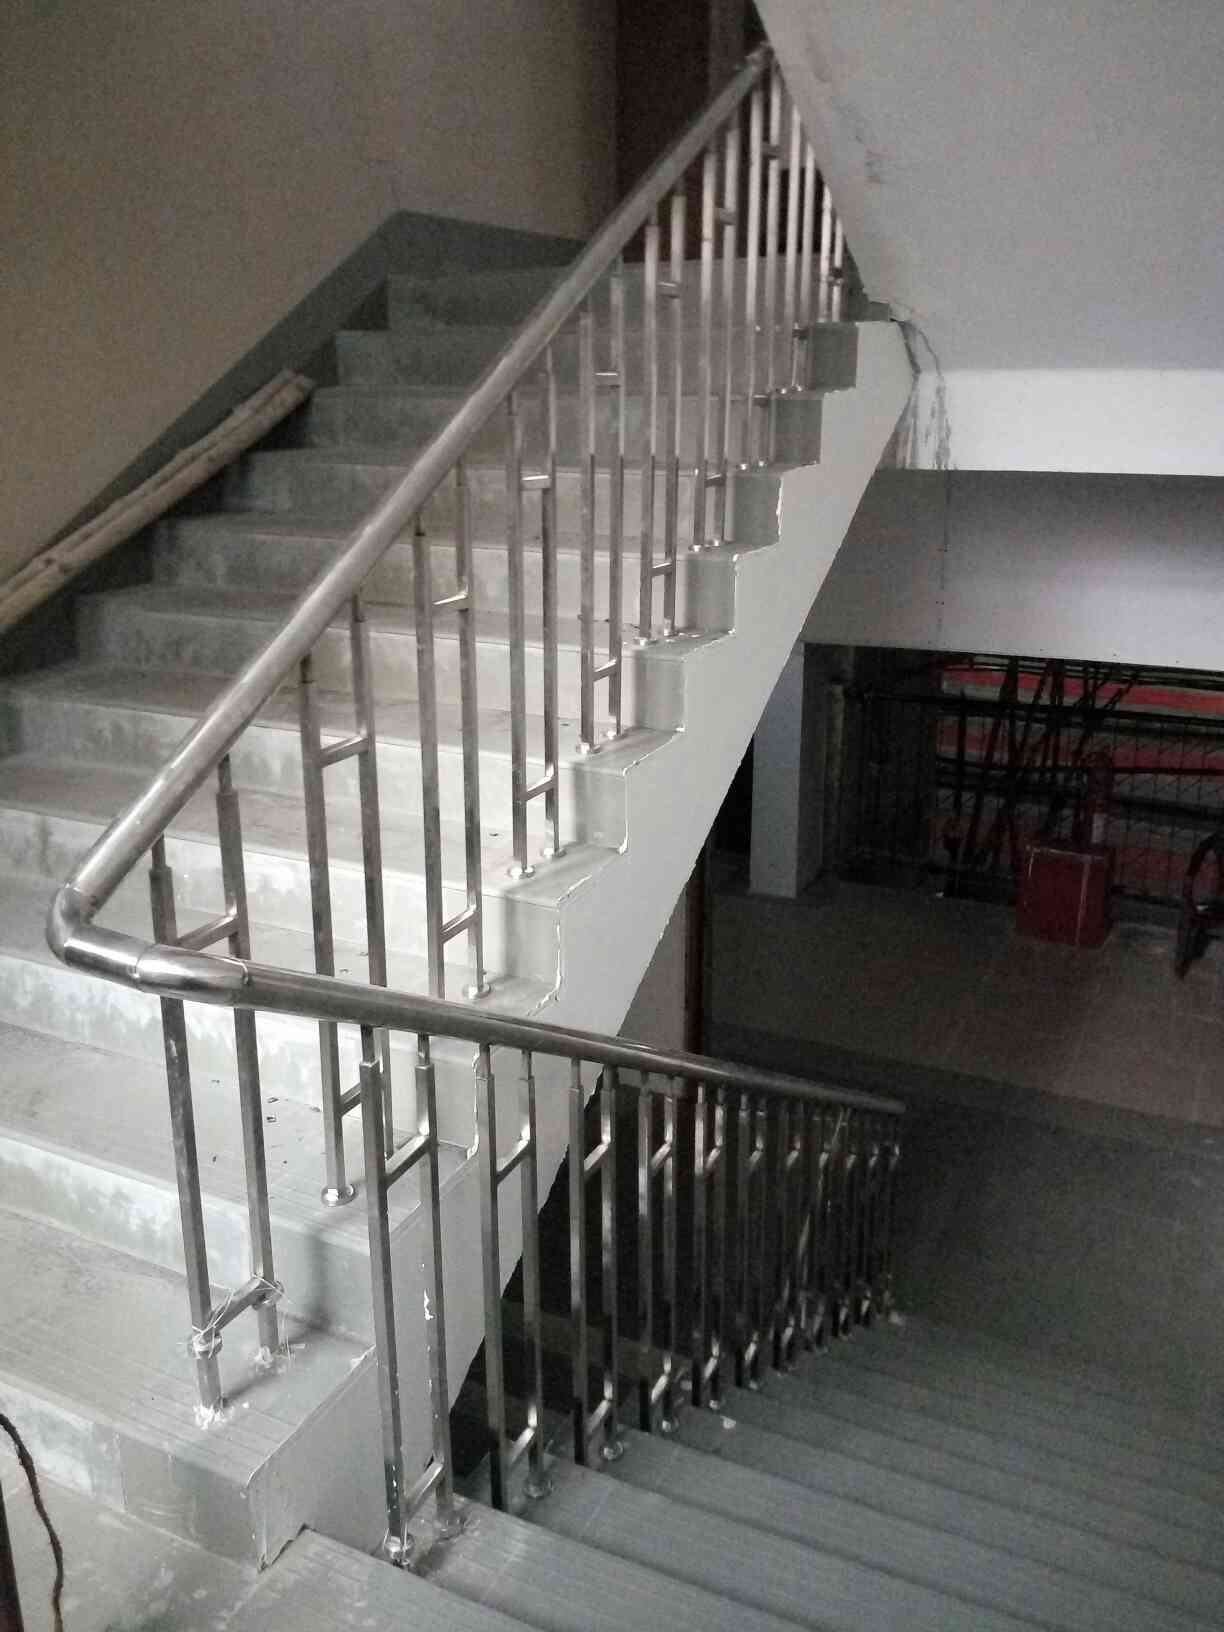 Stainless Steel Railing installed and manufacture of various sizes and shapes.